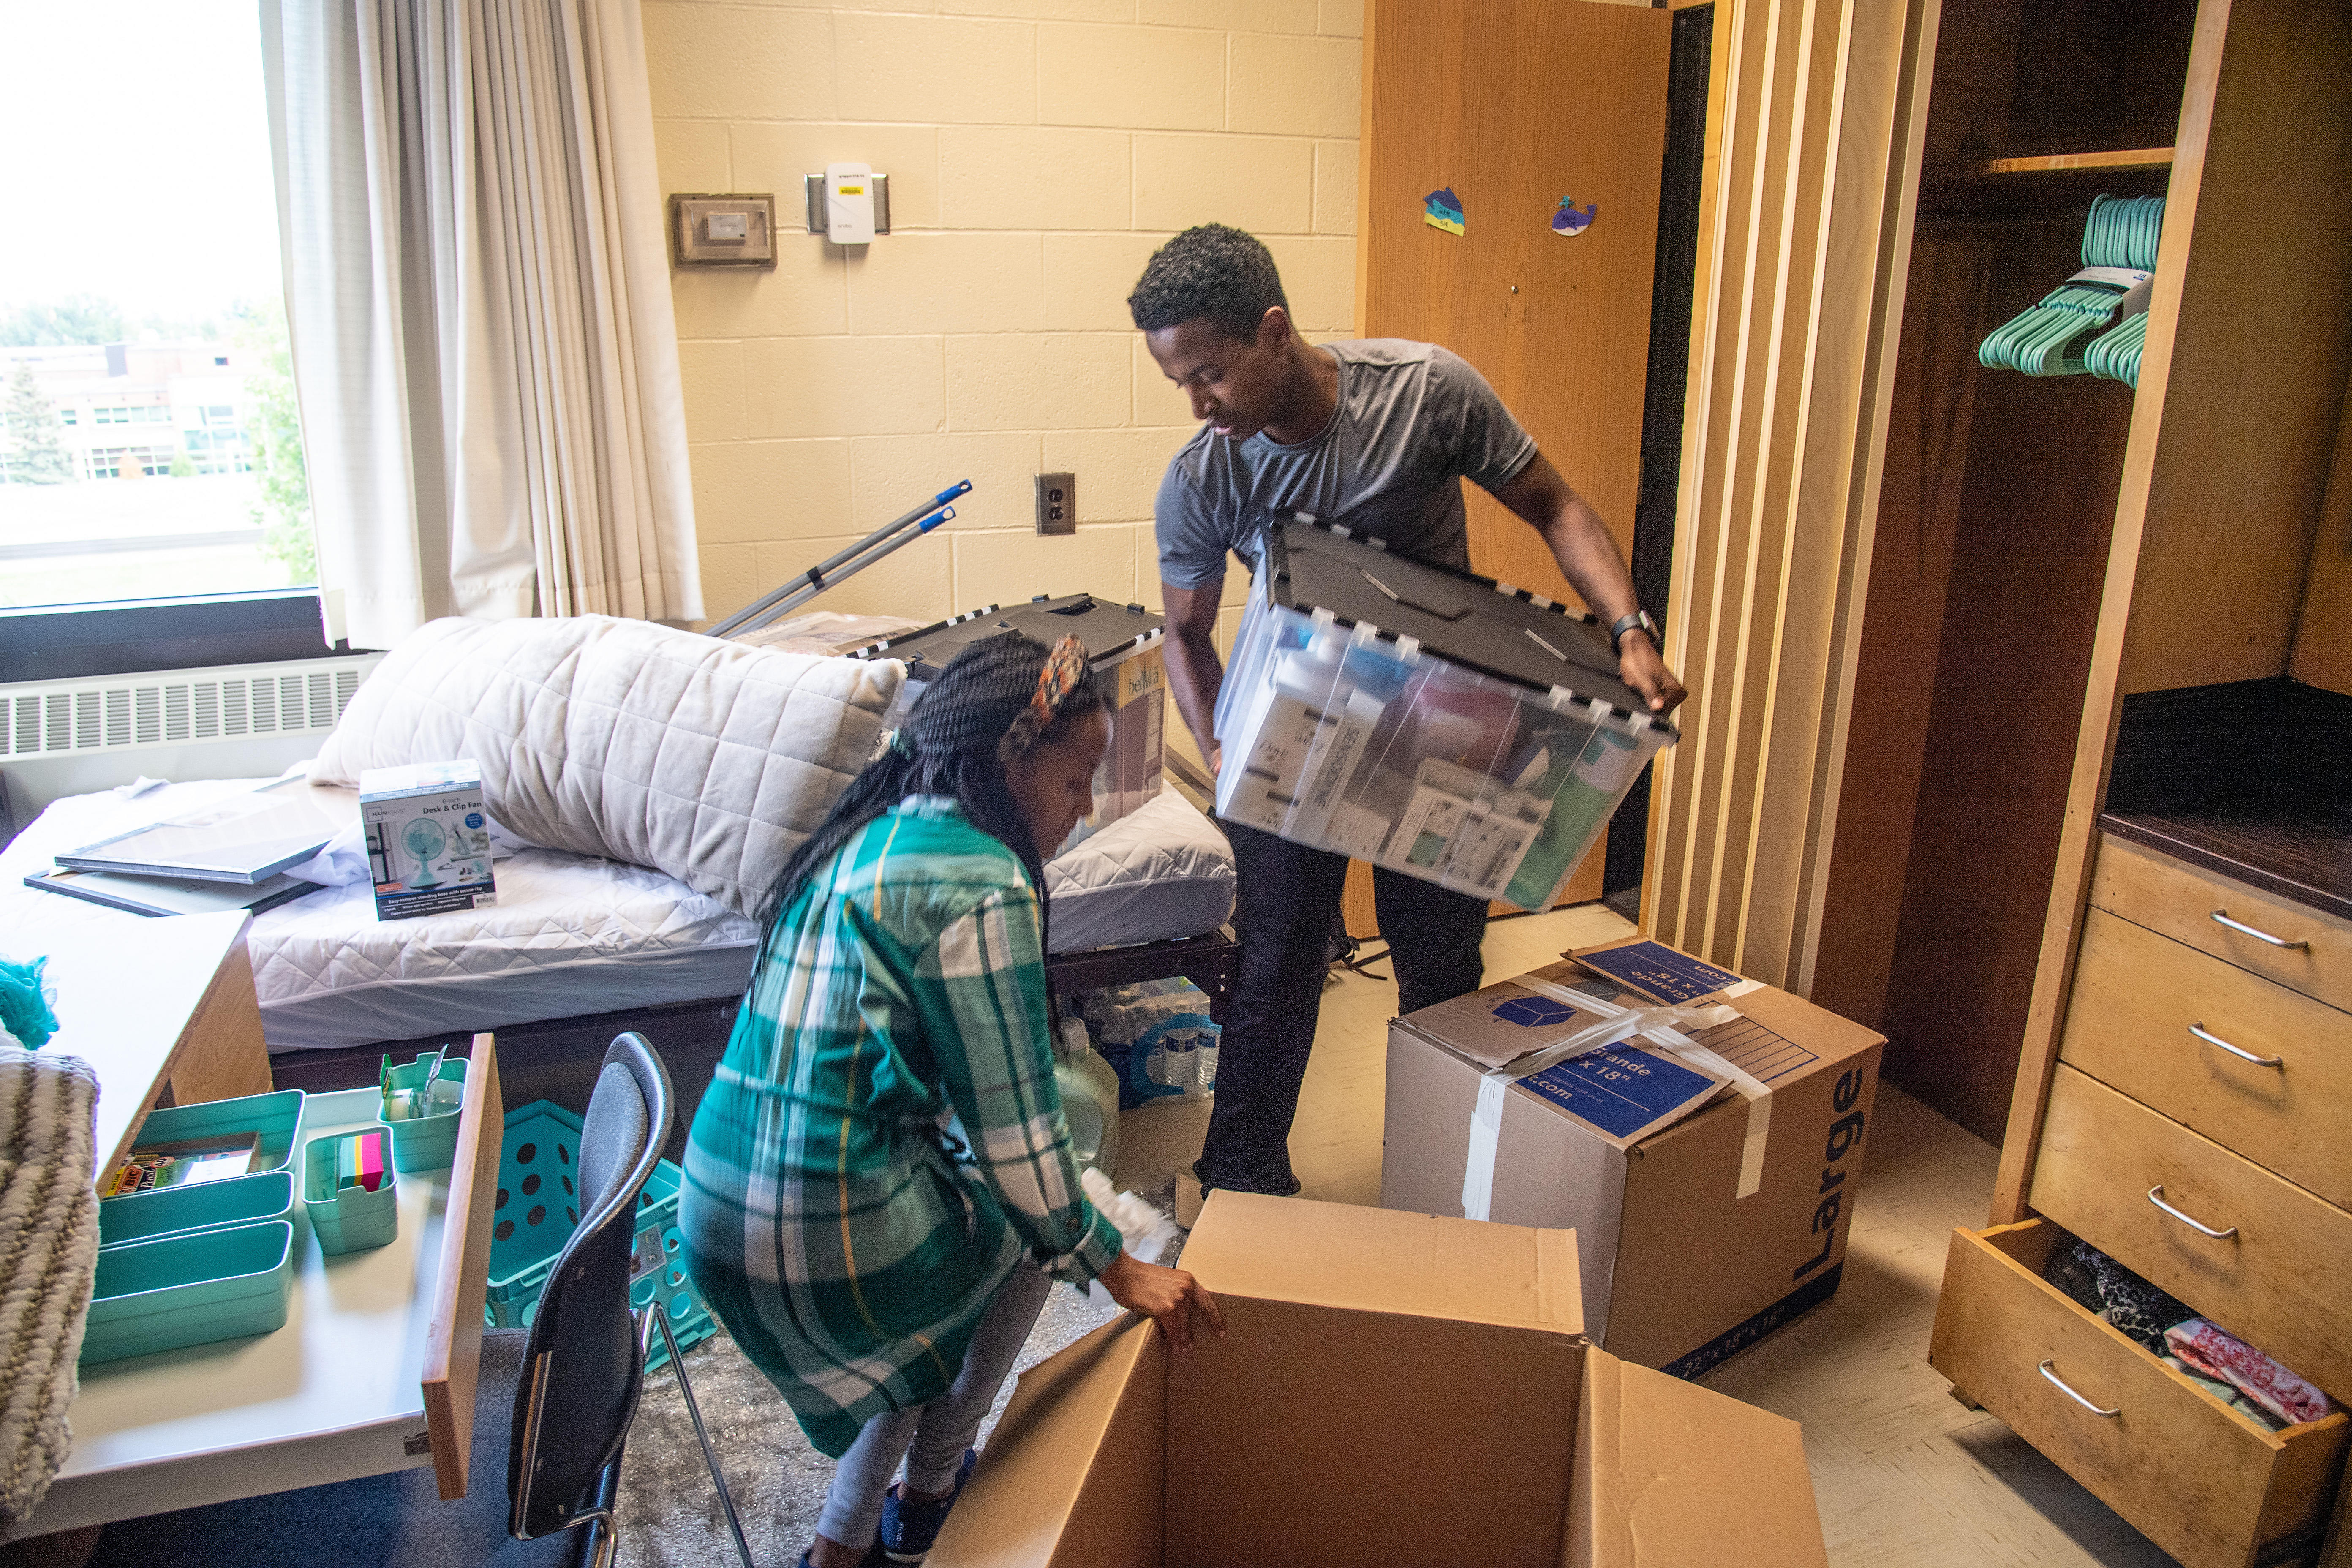 Tallie and Yohanis moving into their dorms during Bulldog Welcome Week